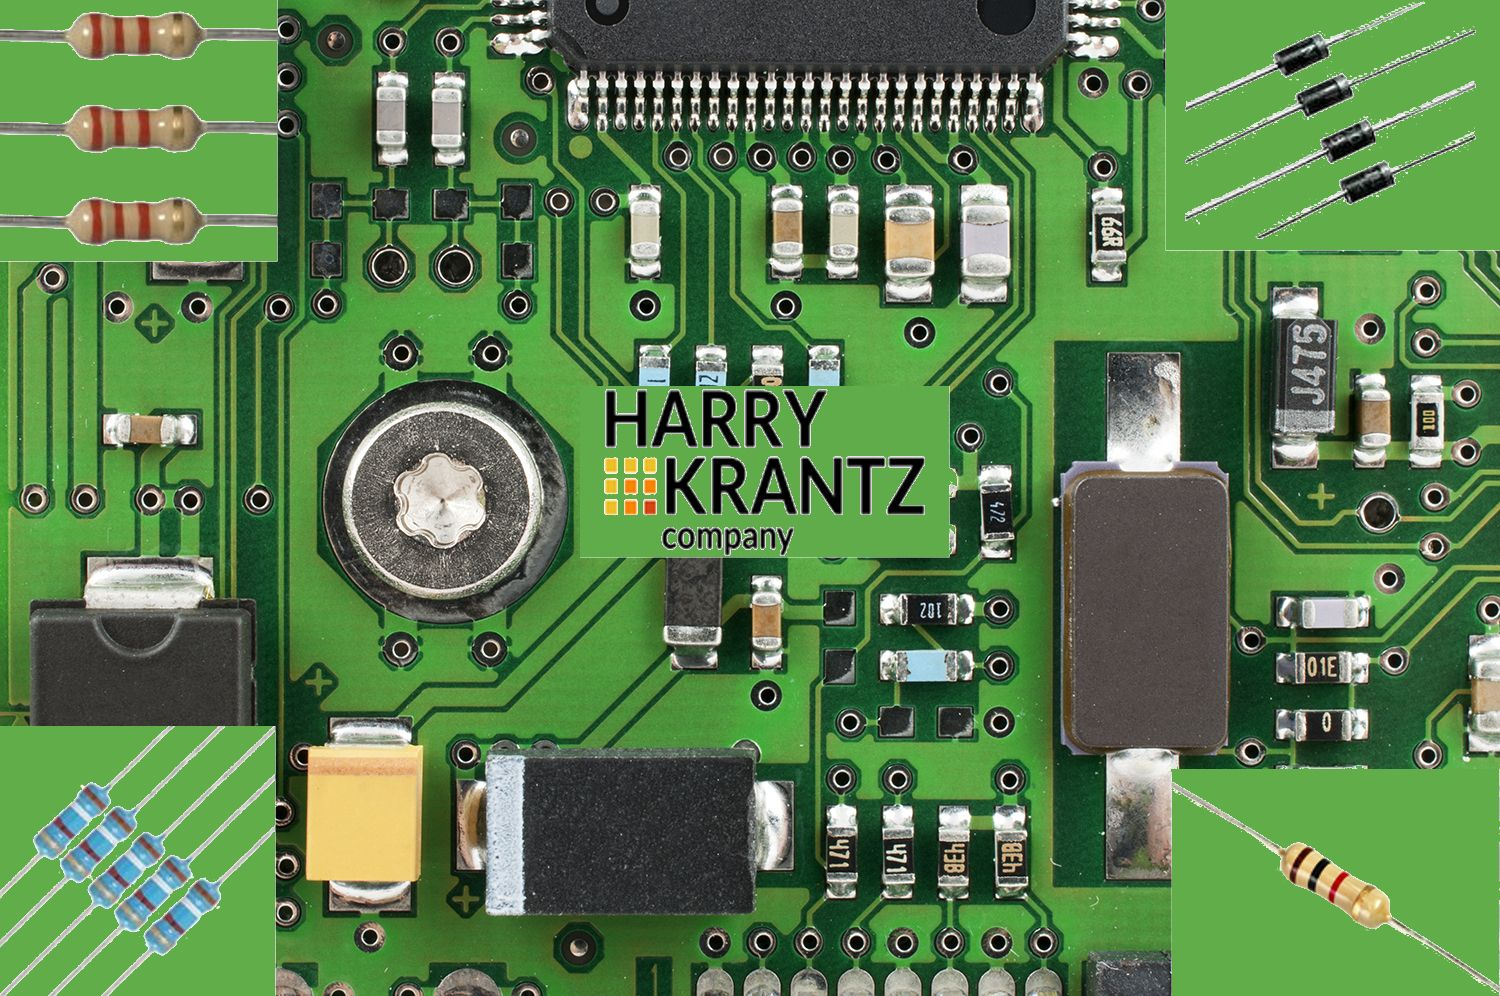 Looking for obsolete passive electronic components? The Harry Krantz Company has a wide variety in stock and available for immediate delivery.